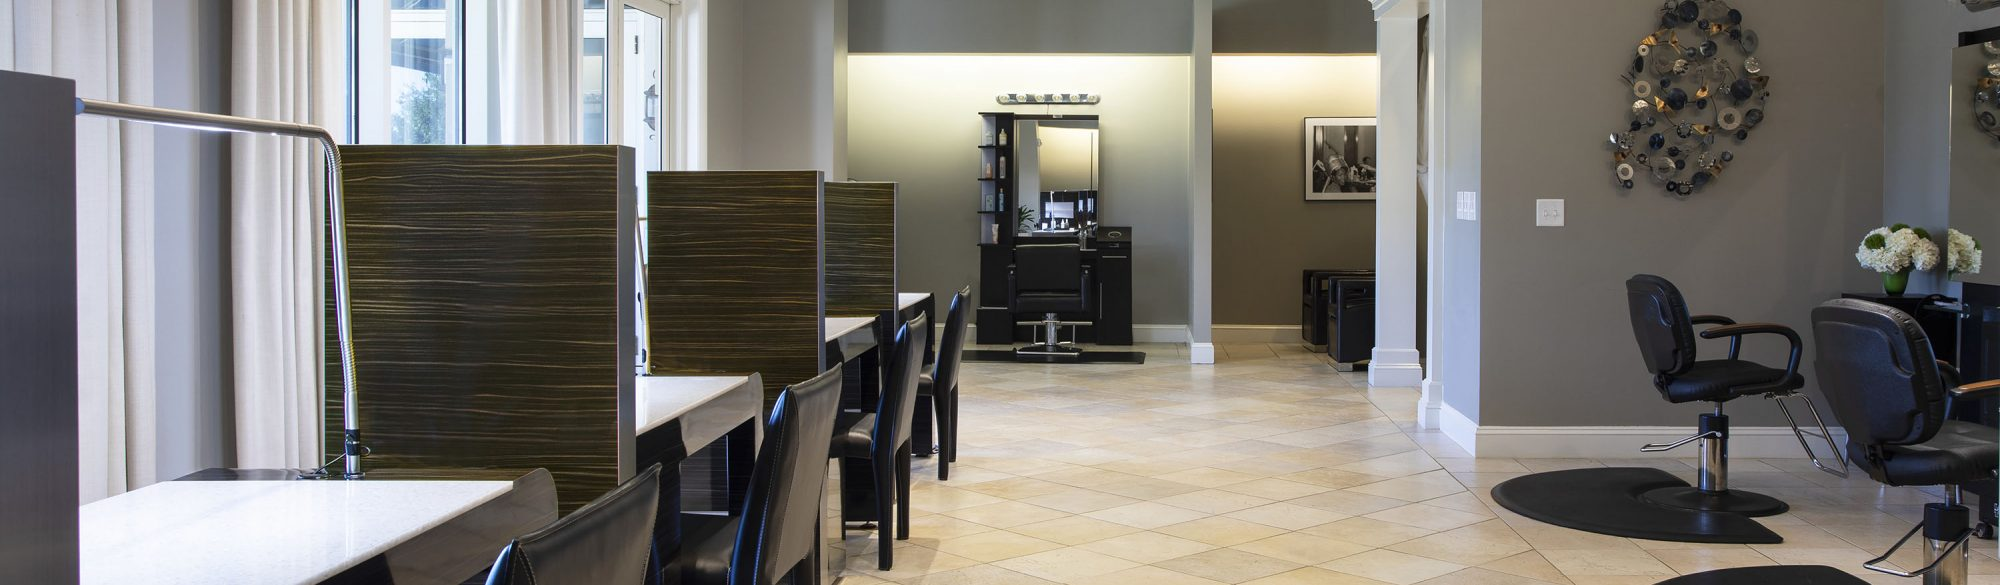 The Spa at Ballantyne, Charlotte Salon